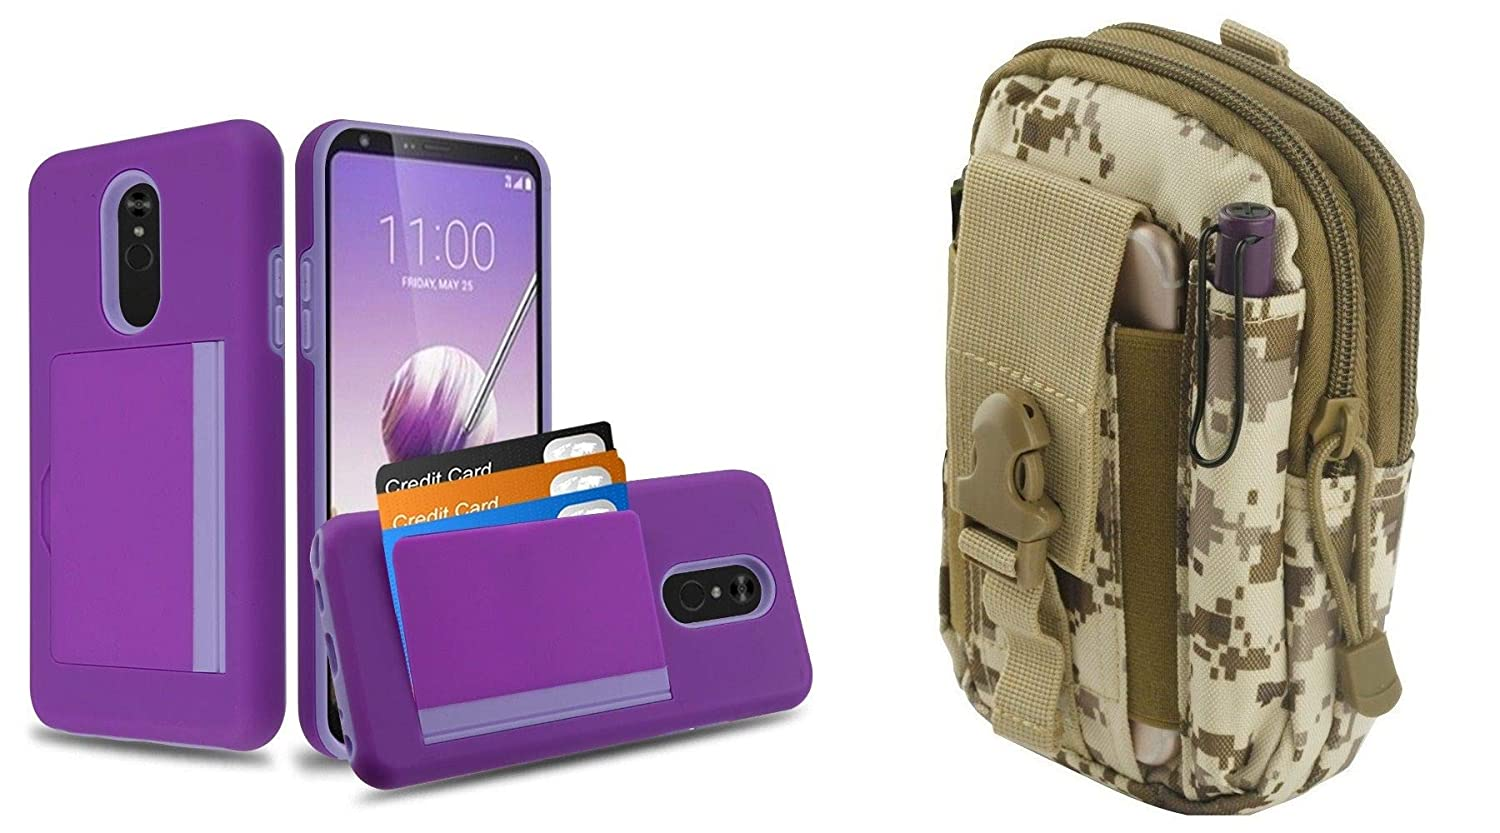 Pocket Hybrid Series 3 Card Storage Compartment Wallet Case Compatible with LG Stylo 5 (Purple/Lavender) with Tactical Travel Pouch (Desert Pixel Camo)